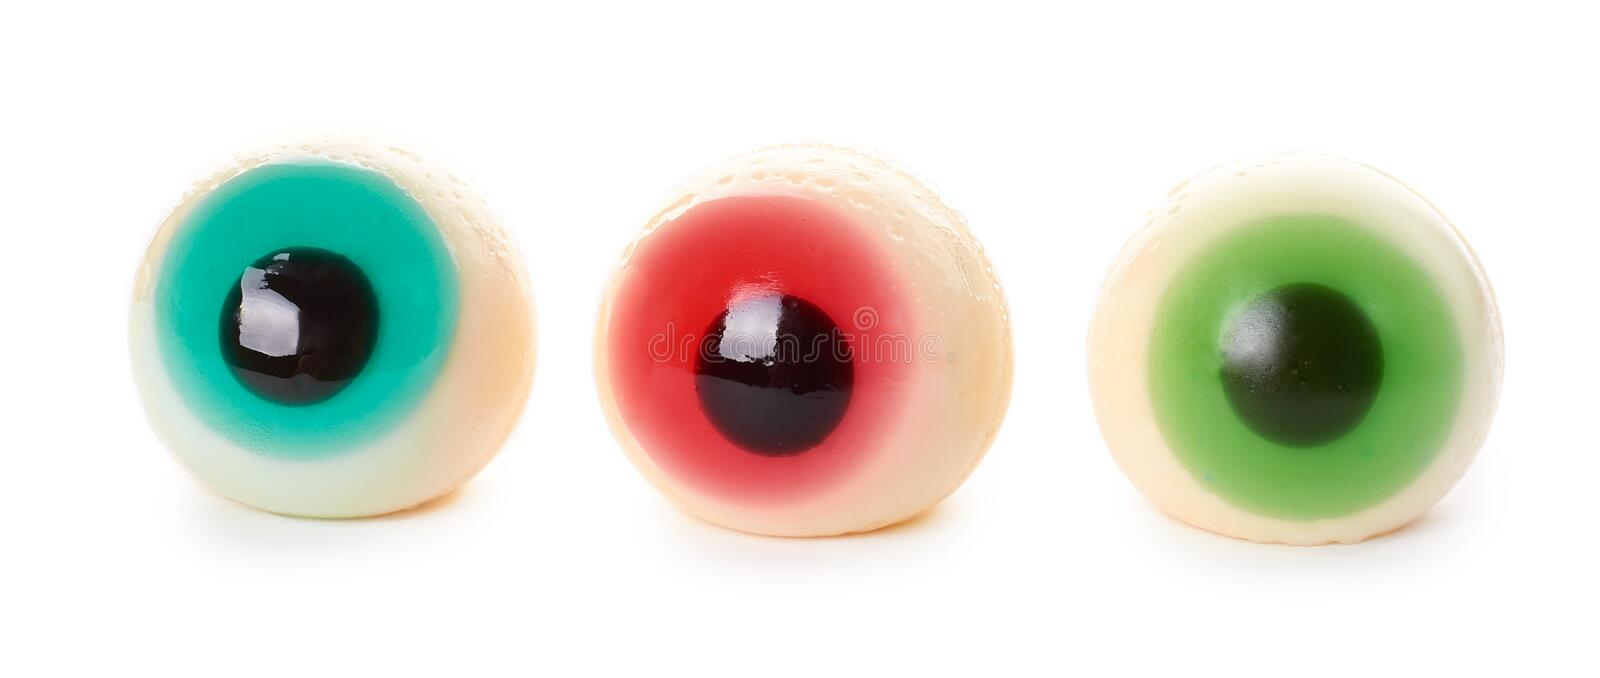 Halloween spooky jelly eye isolated on white background.  stock photo